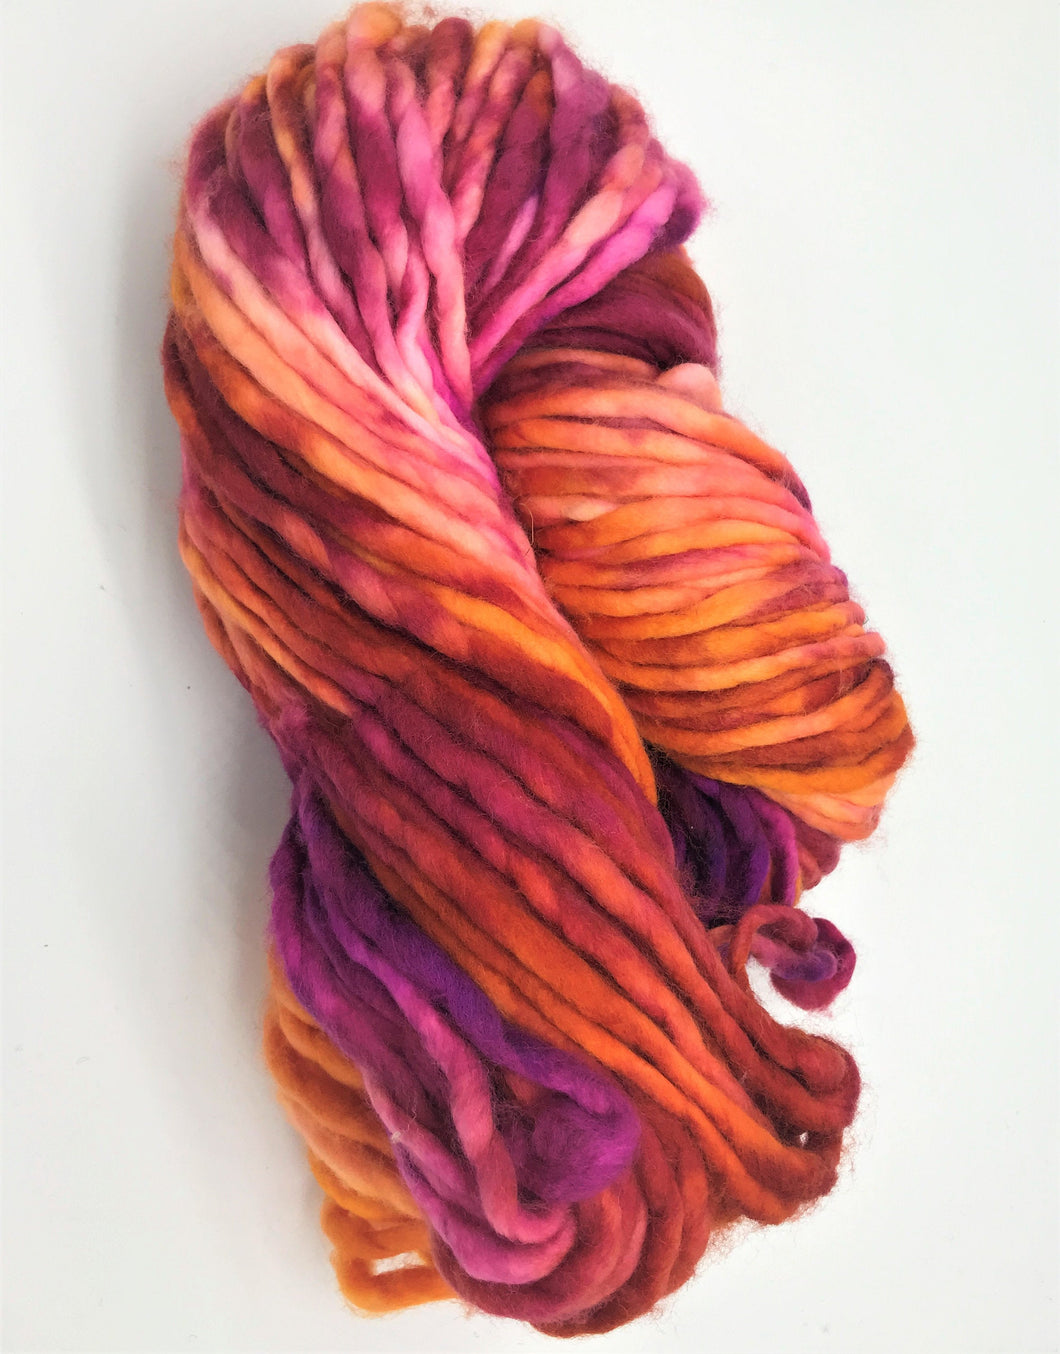 Sunset Beach - Super Chunky 100% Merino Yarn - 126 Yards for knitting shawls, toques and scarves in Pink, orange and purple